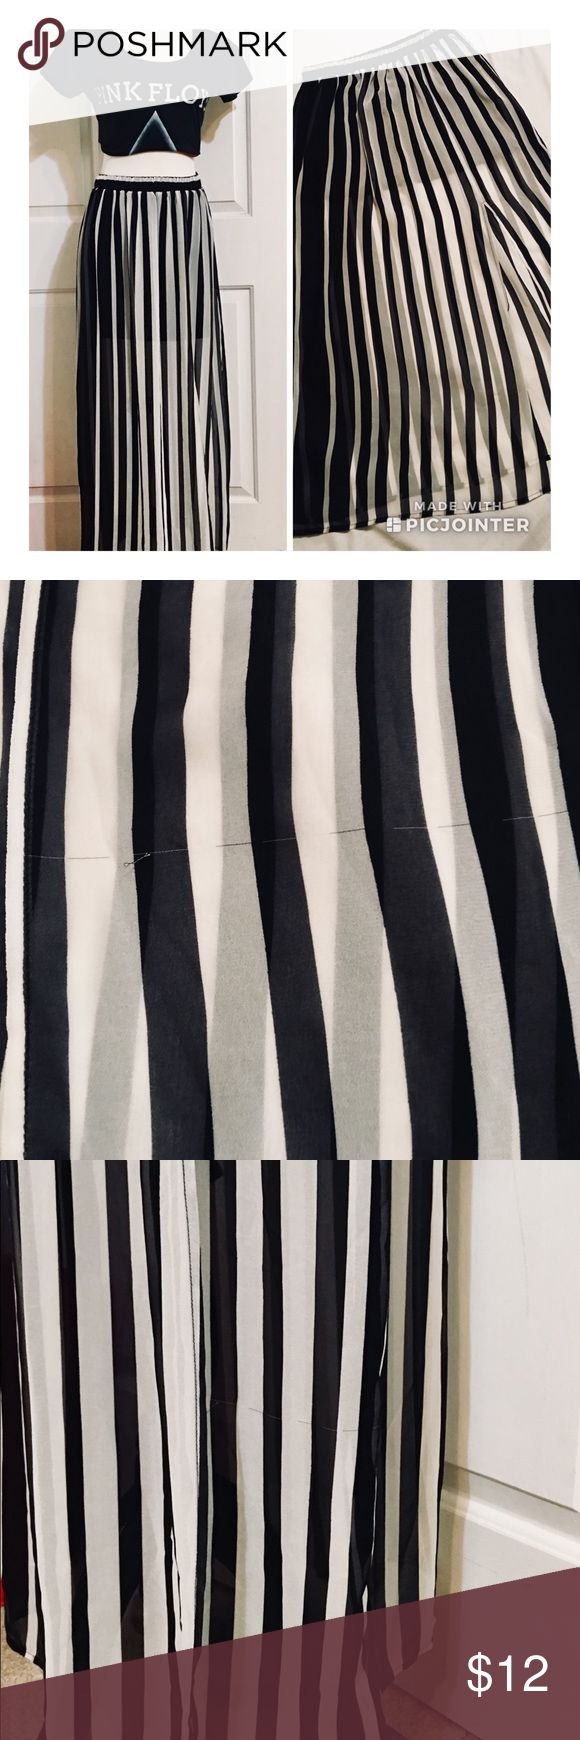 """Forever 21 Sheer Black And White Maxi Skirt Gorgeous and comfortable skirt, with elastic waist and front left slit to just above the knee. Black stripes are thicker on right side, graduating to a thinner stripe. Black mini skirt length lining is 15"""" long. Skirt is approximately 36"""" long. Picture 2 shows a horizontal snag in the fabric. Picture 3 shows snag from a distance (not very noticeable). Elastic waist is 14"""" measured flat, unstretched. Forever 21 Skirts Maxi"""